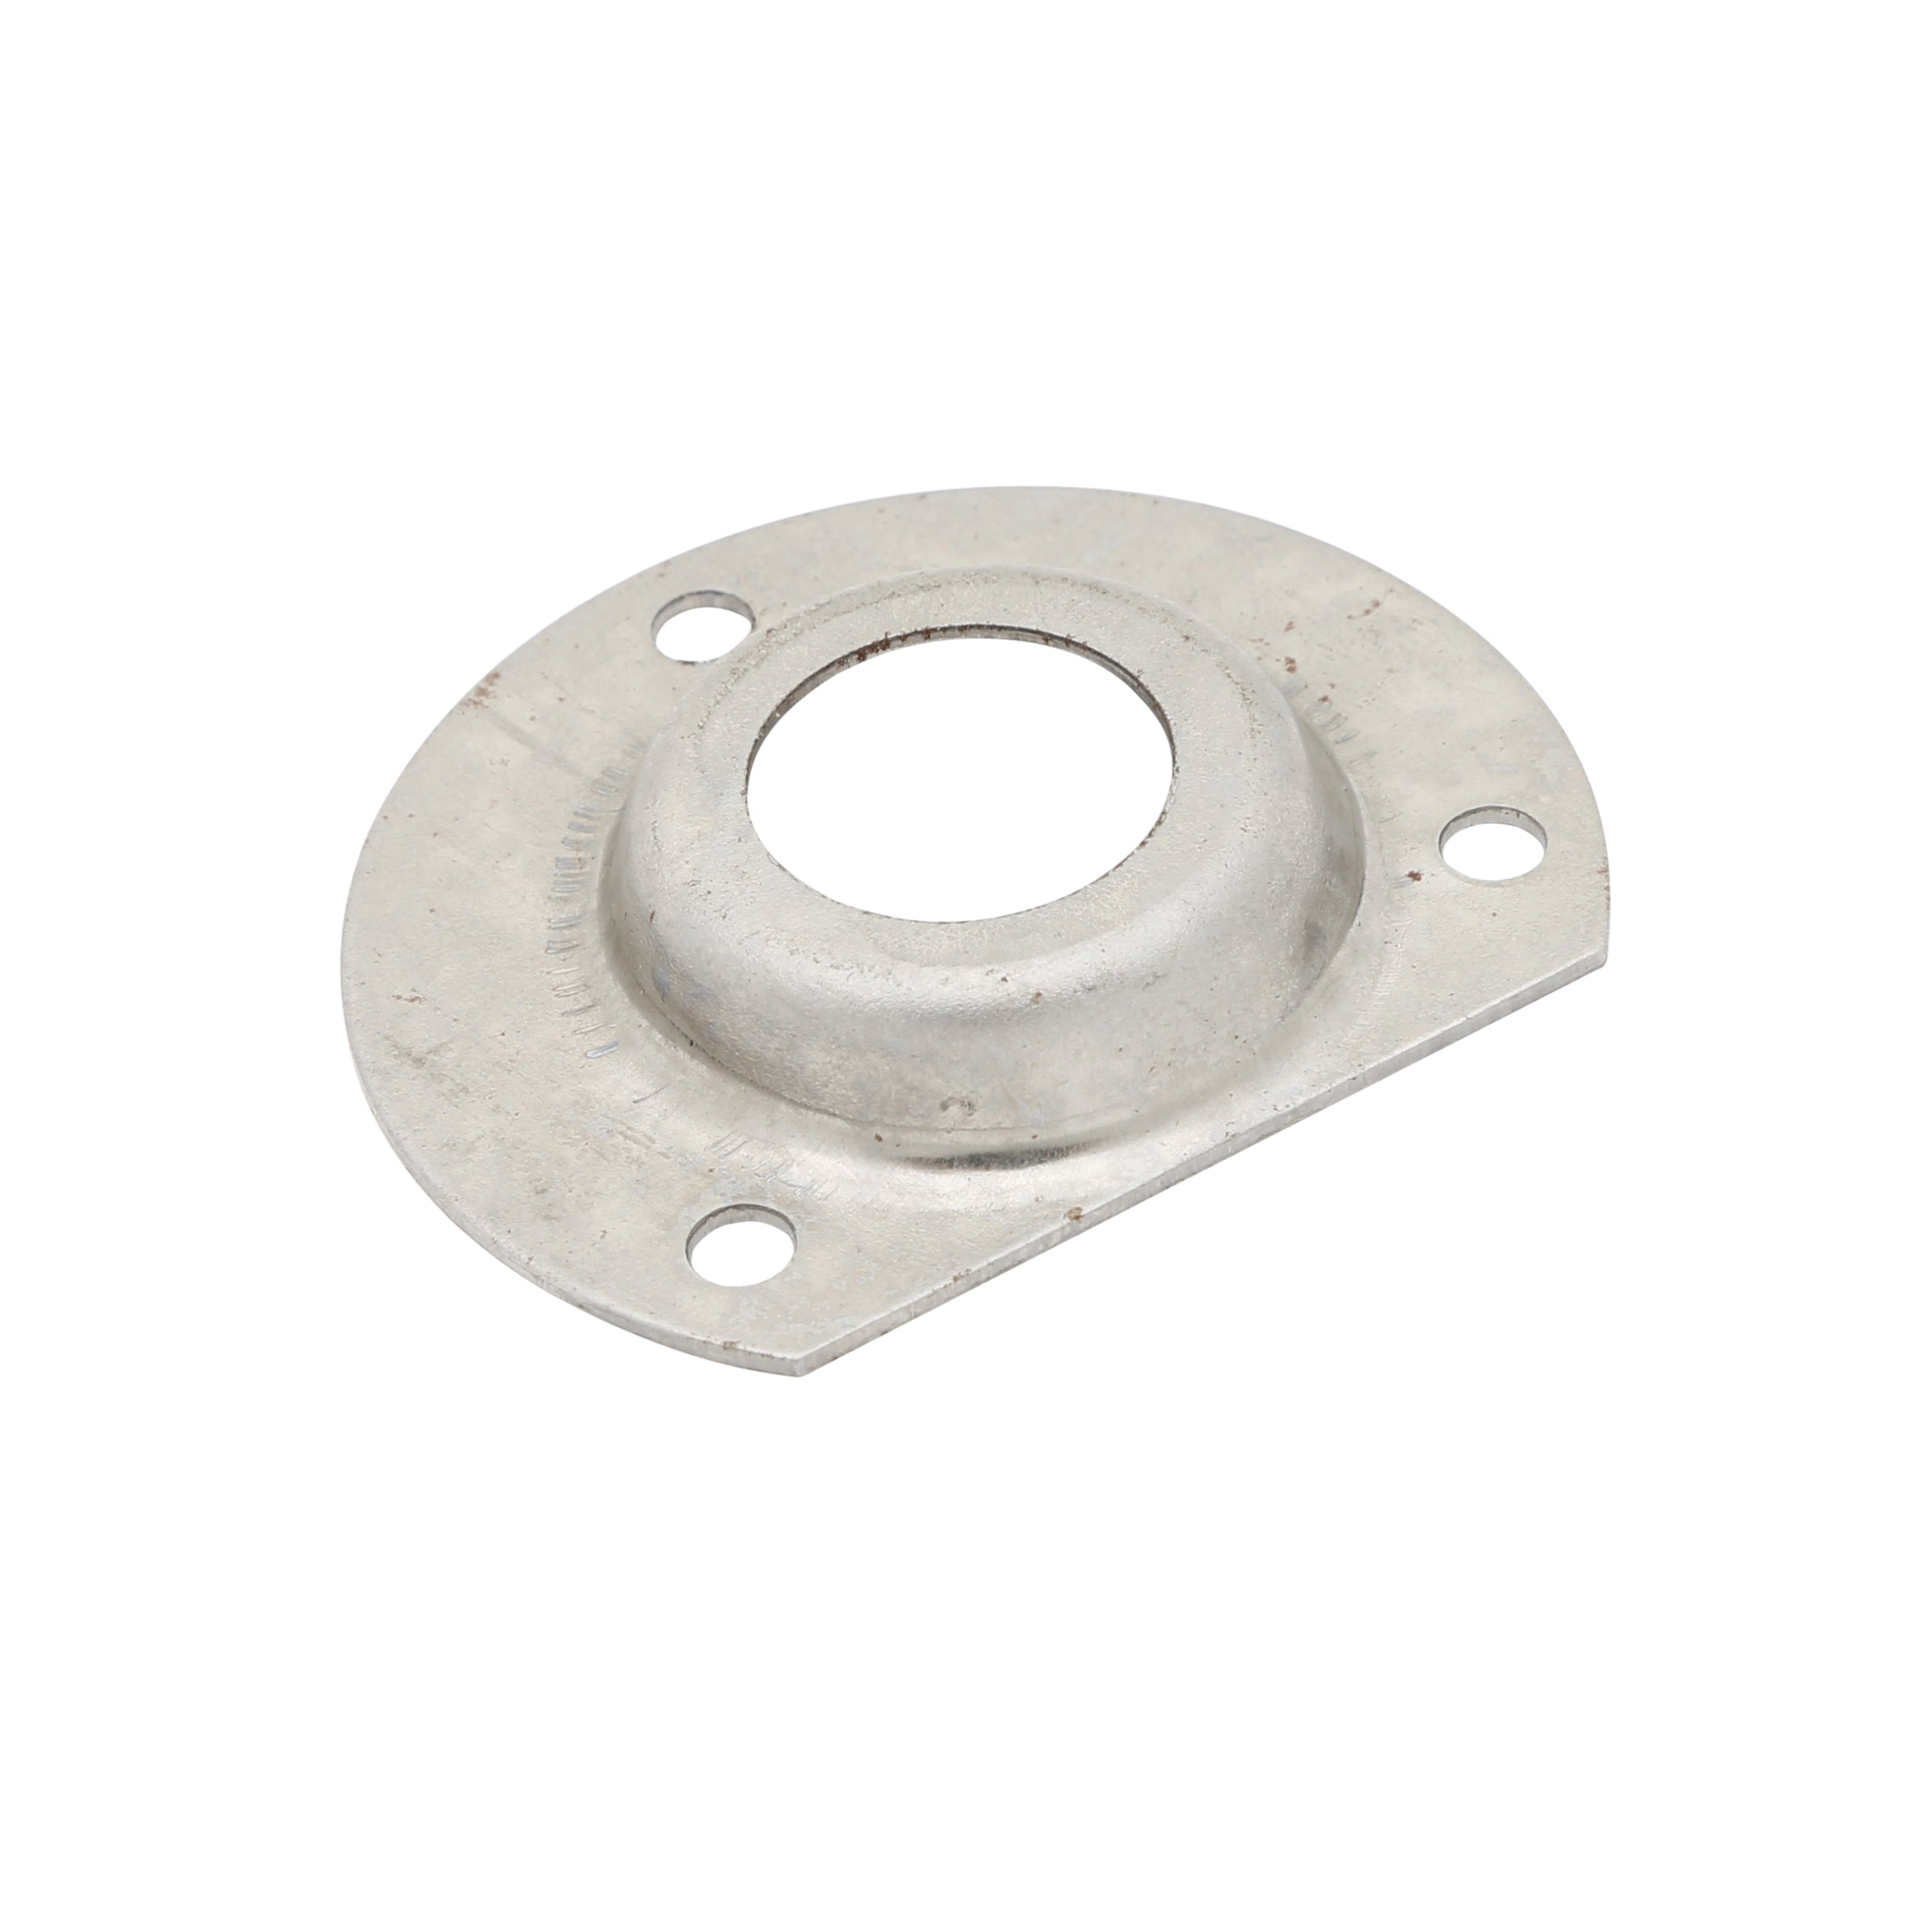 Starter Rod Grommet Cover • 1928-31 Model A Ford